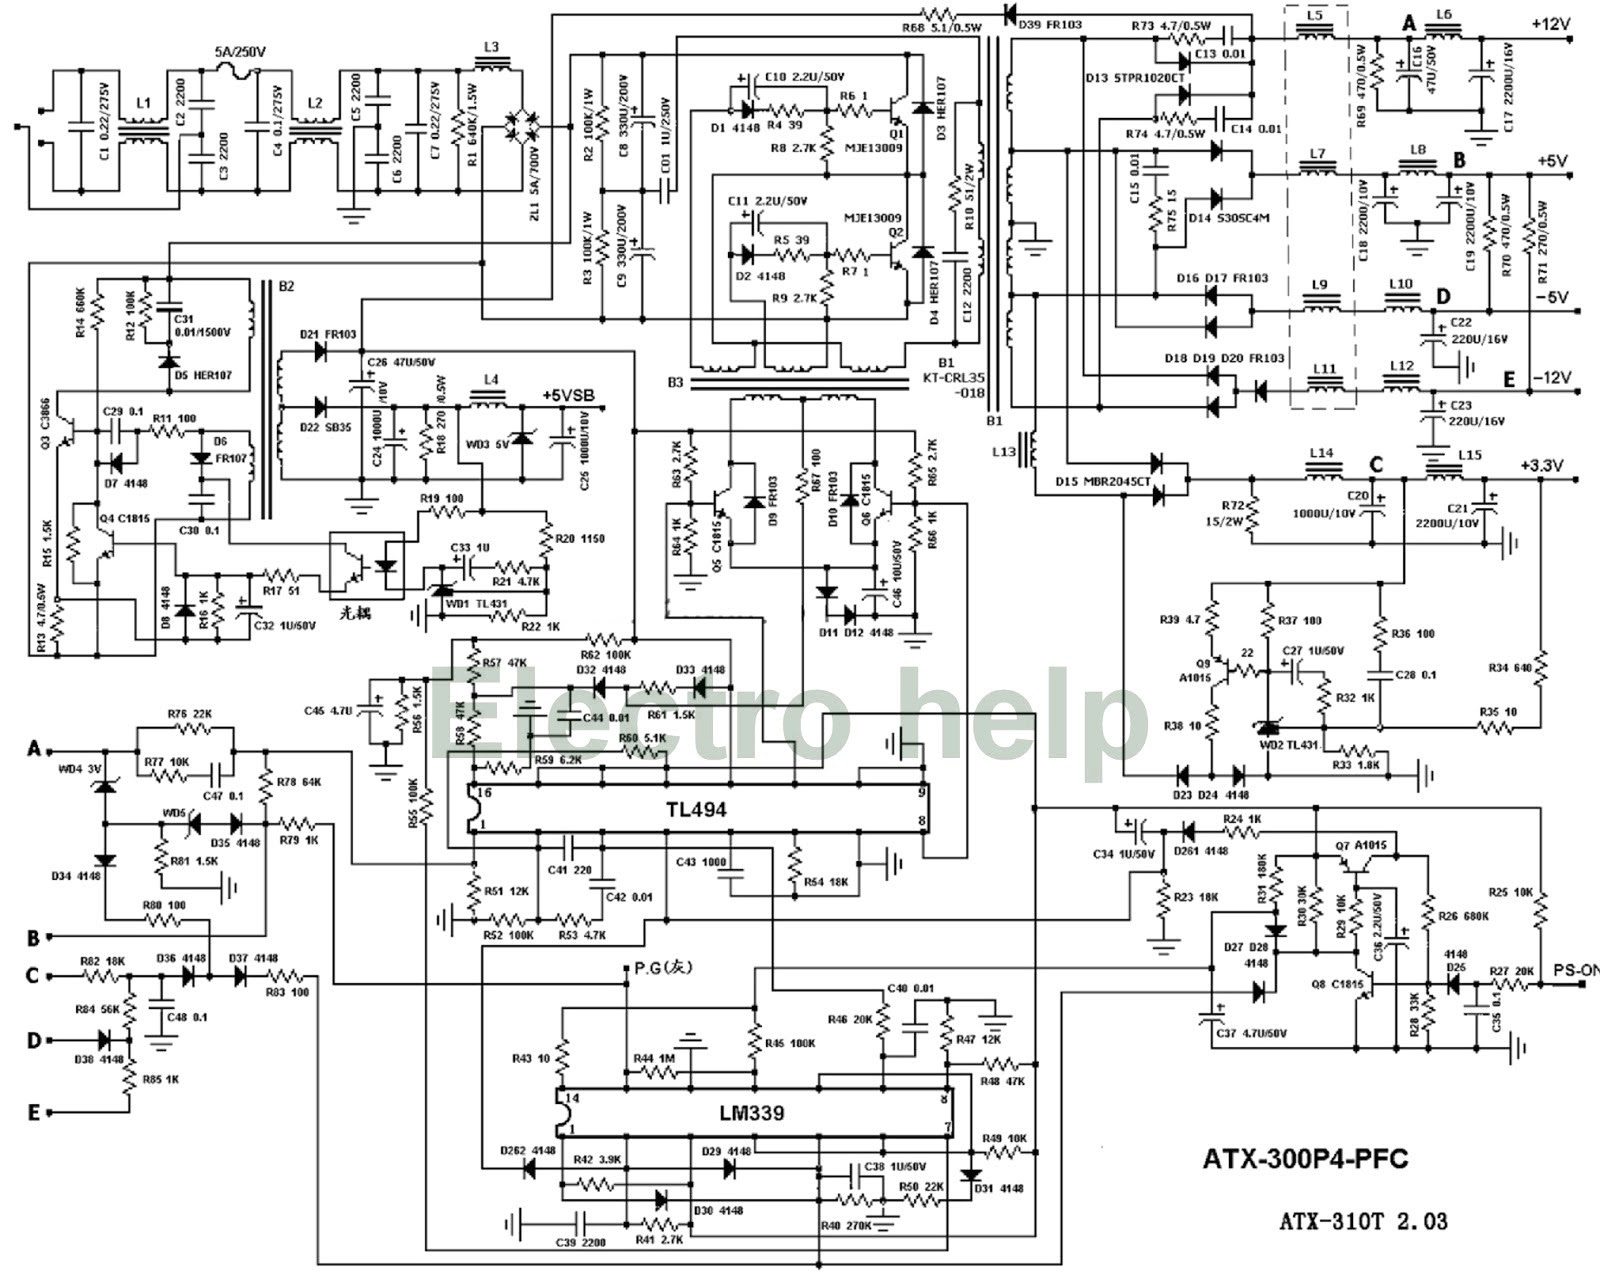 wiring dia 27hp kohler schematic diagram